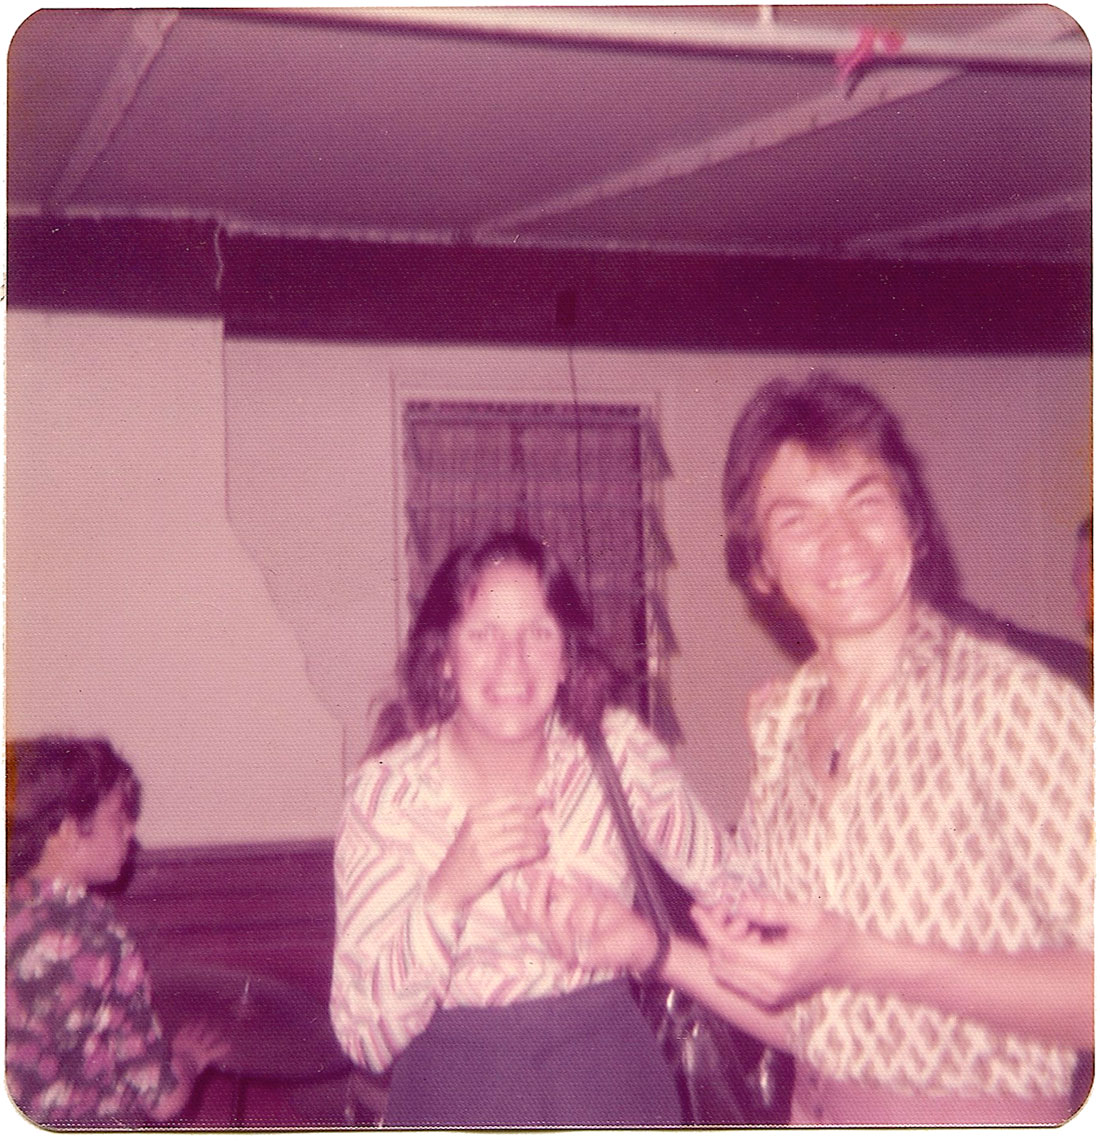 Duane Munera (and friend) at The Big-5 Club on March 30, 1975